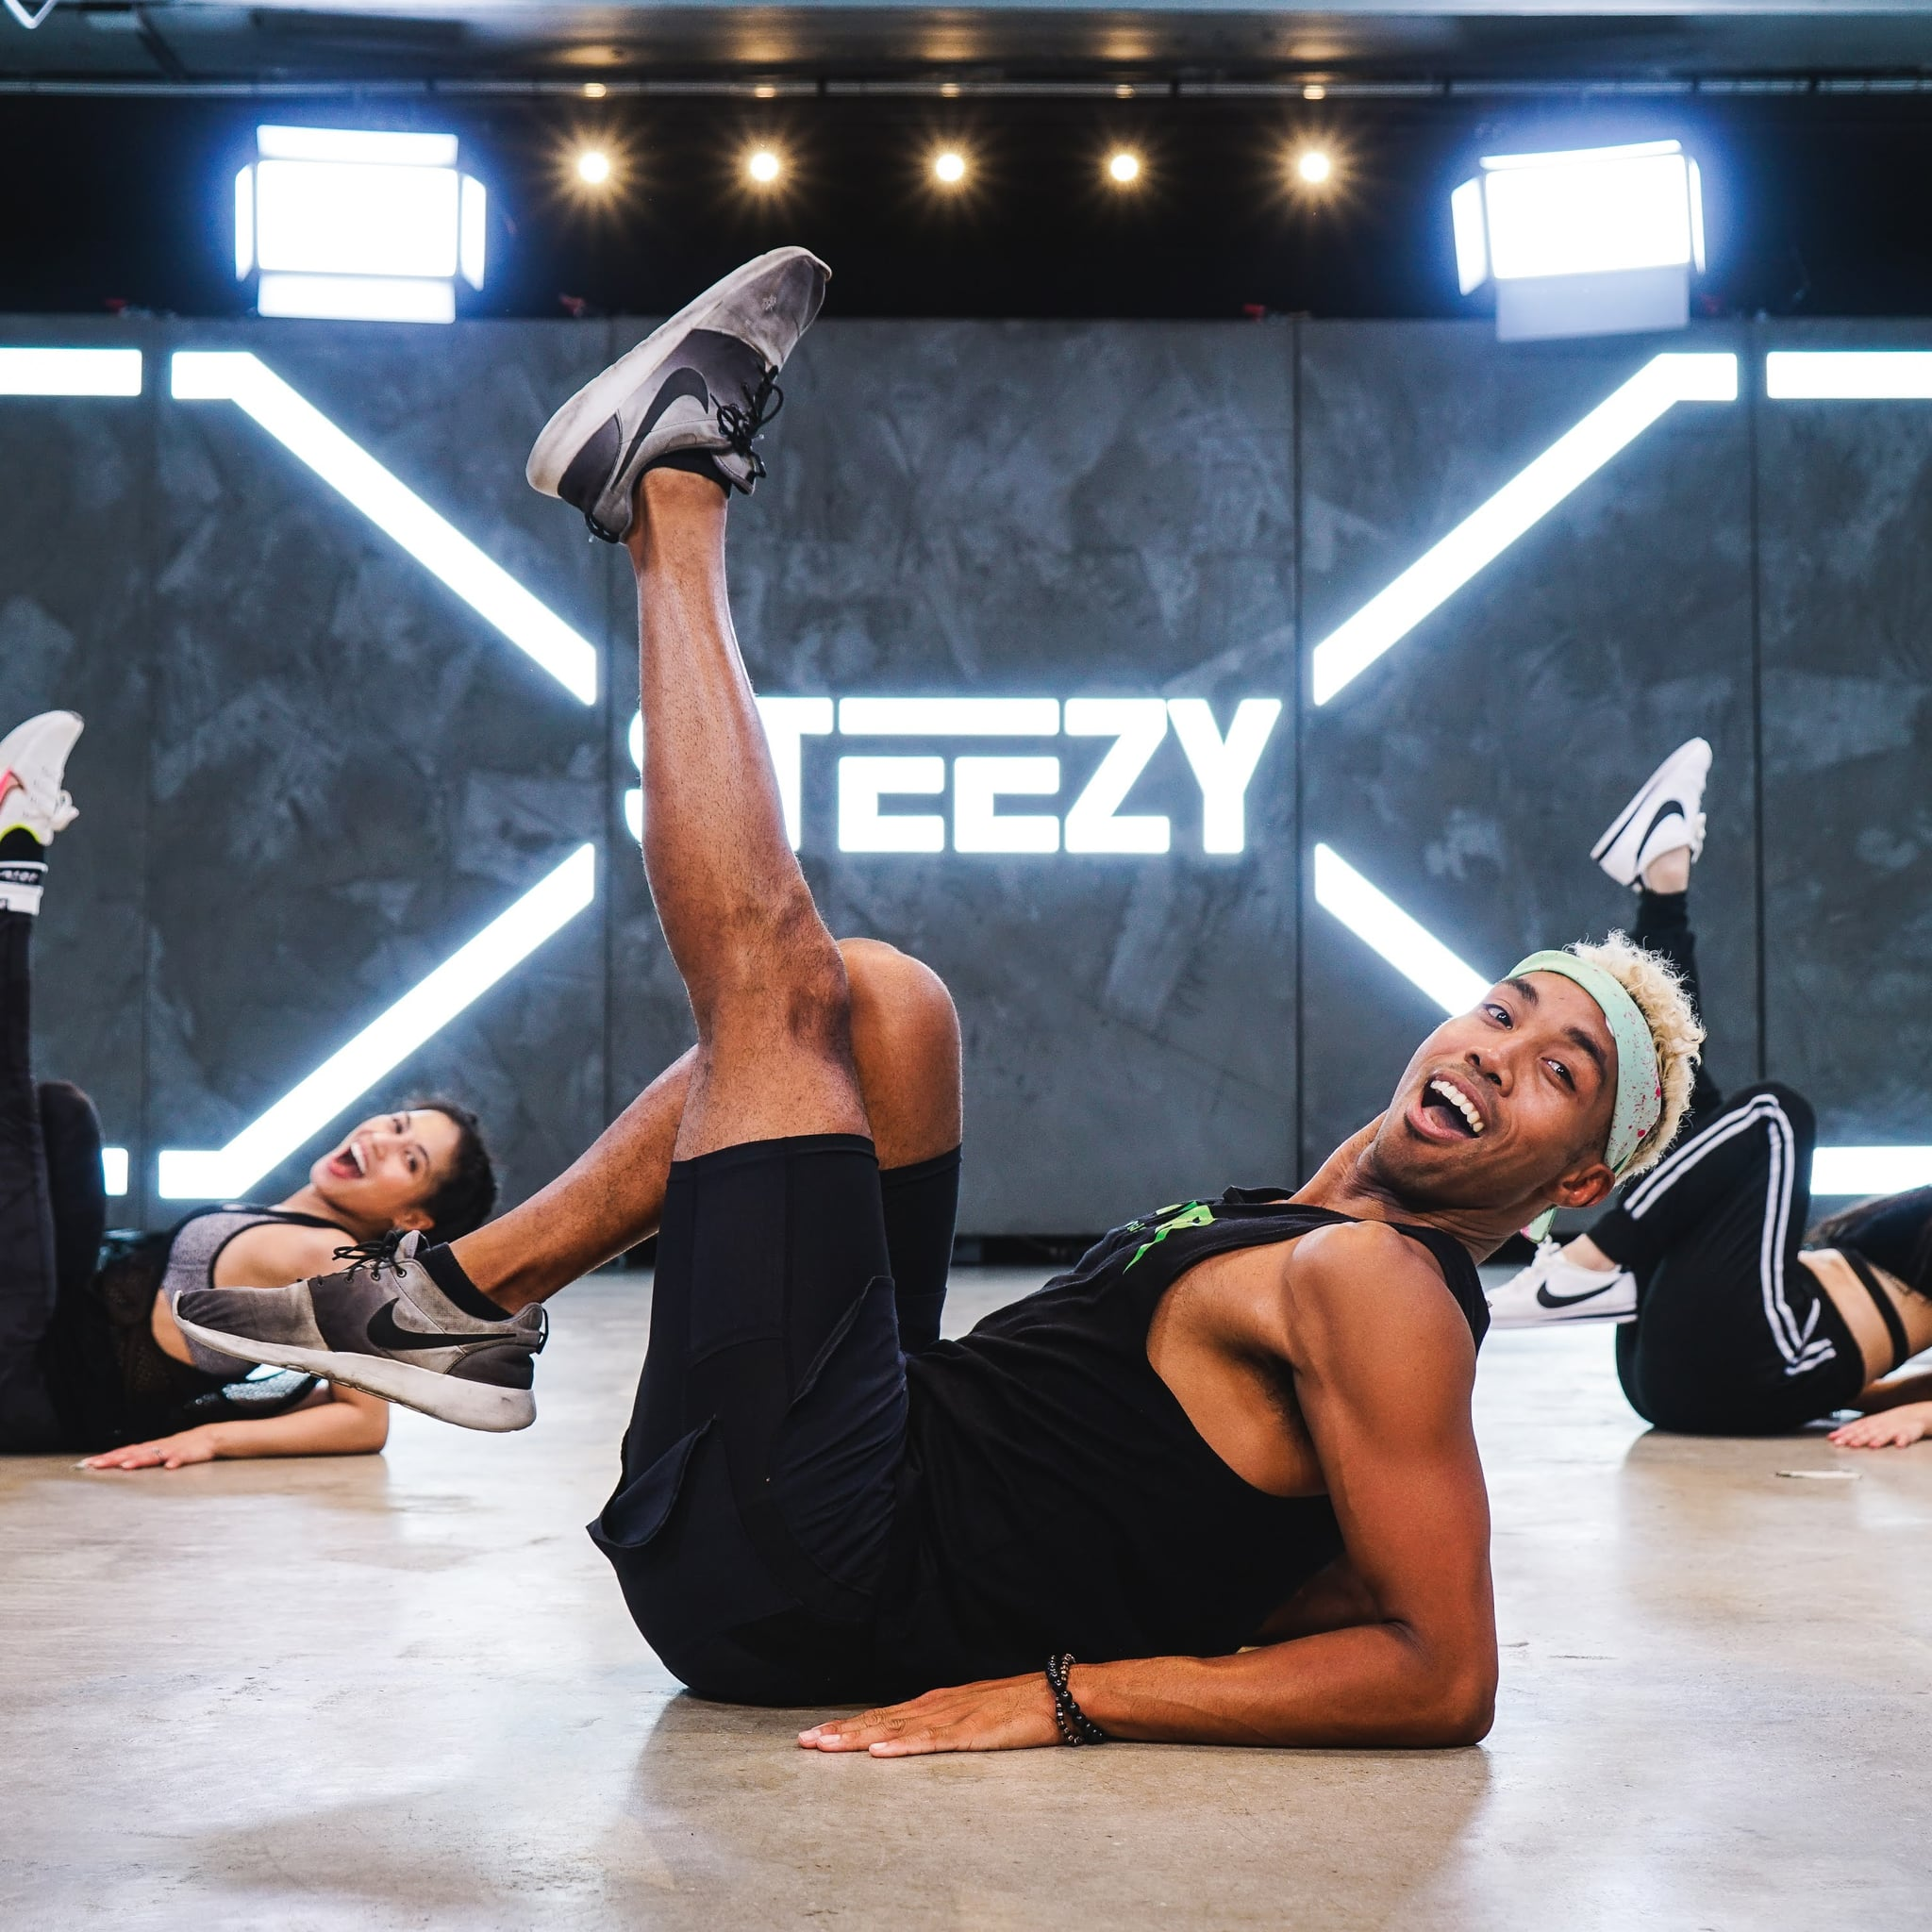 Steezy Beginner Dance Fitness Class Review